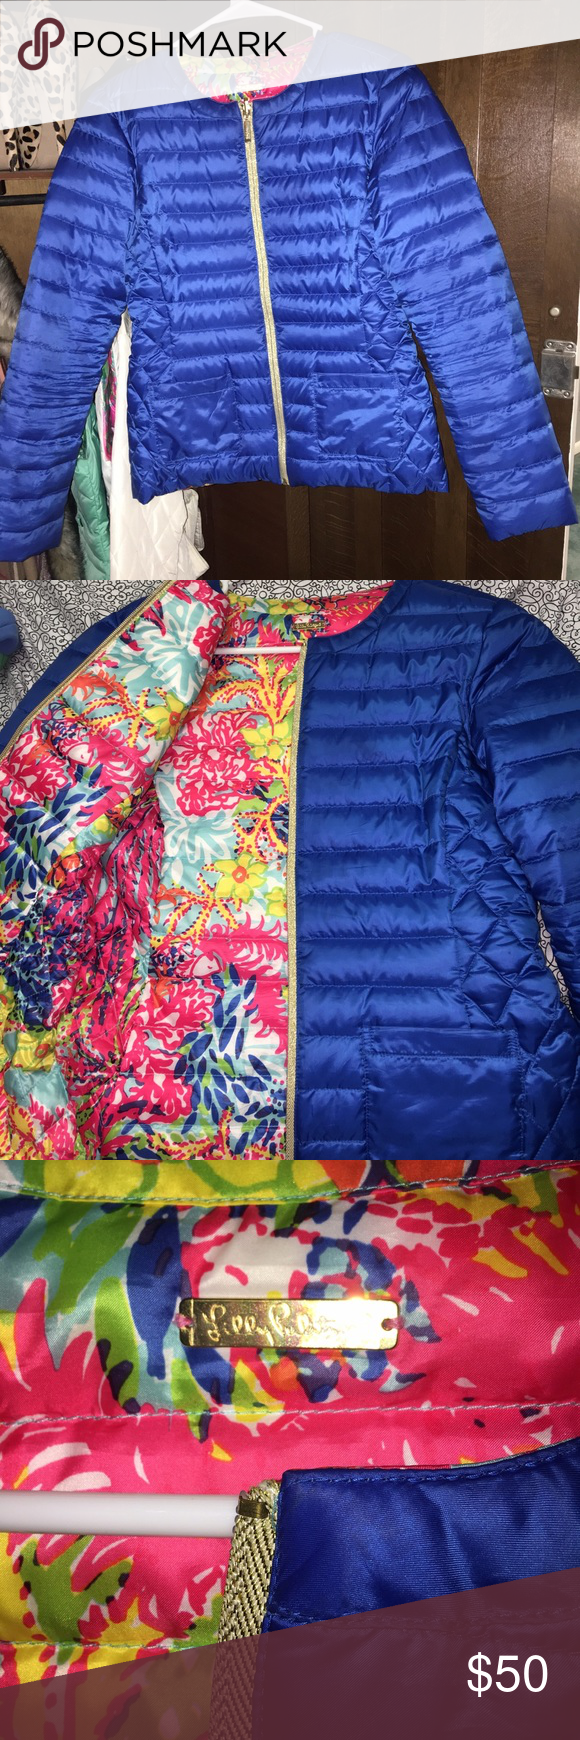 Preowned Lilly Pulitzer Puff Jacket 💙 Beautiful winter coat , very bright and vibrant colors can be worn on either side ! Size small 💙 Lilly Pulitzer Jackets & Coats Puffers